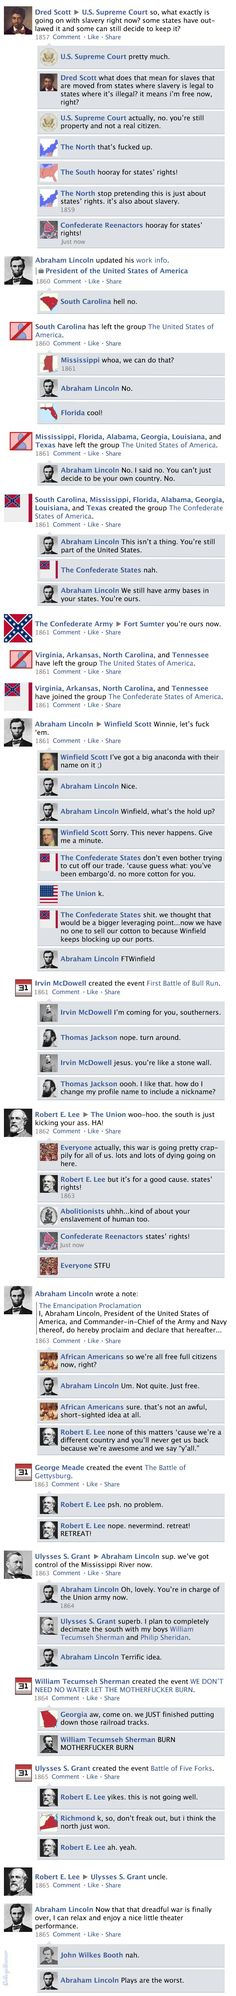 """Facebook News Feed History of the Civil War """" No. I said no. You can't just decide to be your own country. No"""" - Abraham Lincoln lol"""